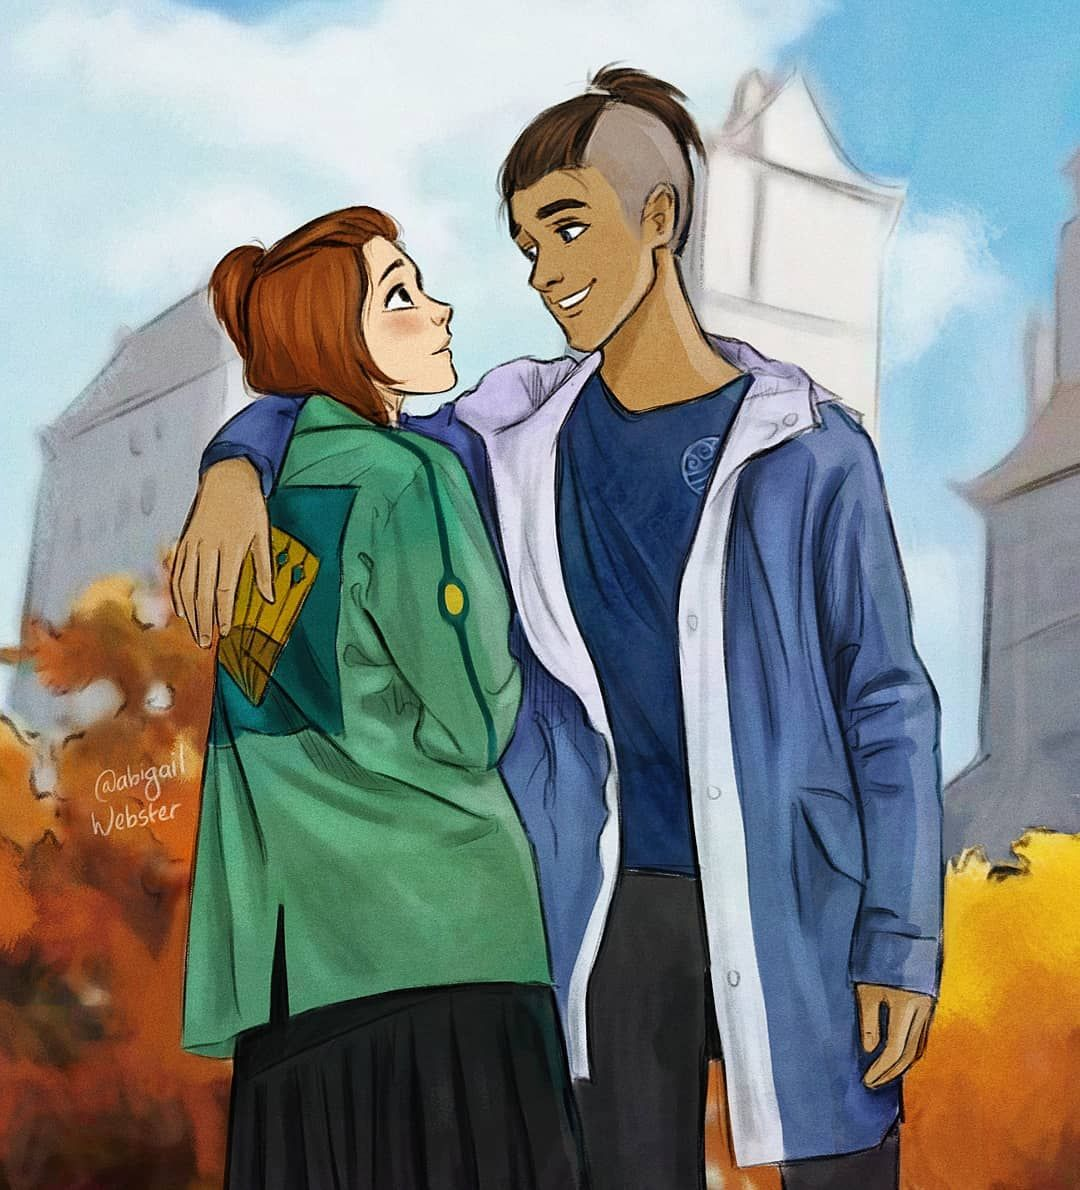 Abbey On Instagram Modern Day Sokka And Suki I Kinda Want Her Jacket After Drawing This Who In 2020 Avatar Cartoon Avatar The Last Airbender Art The Last Avatar